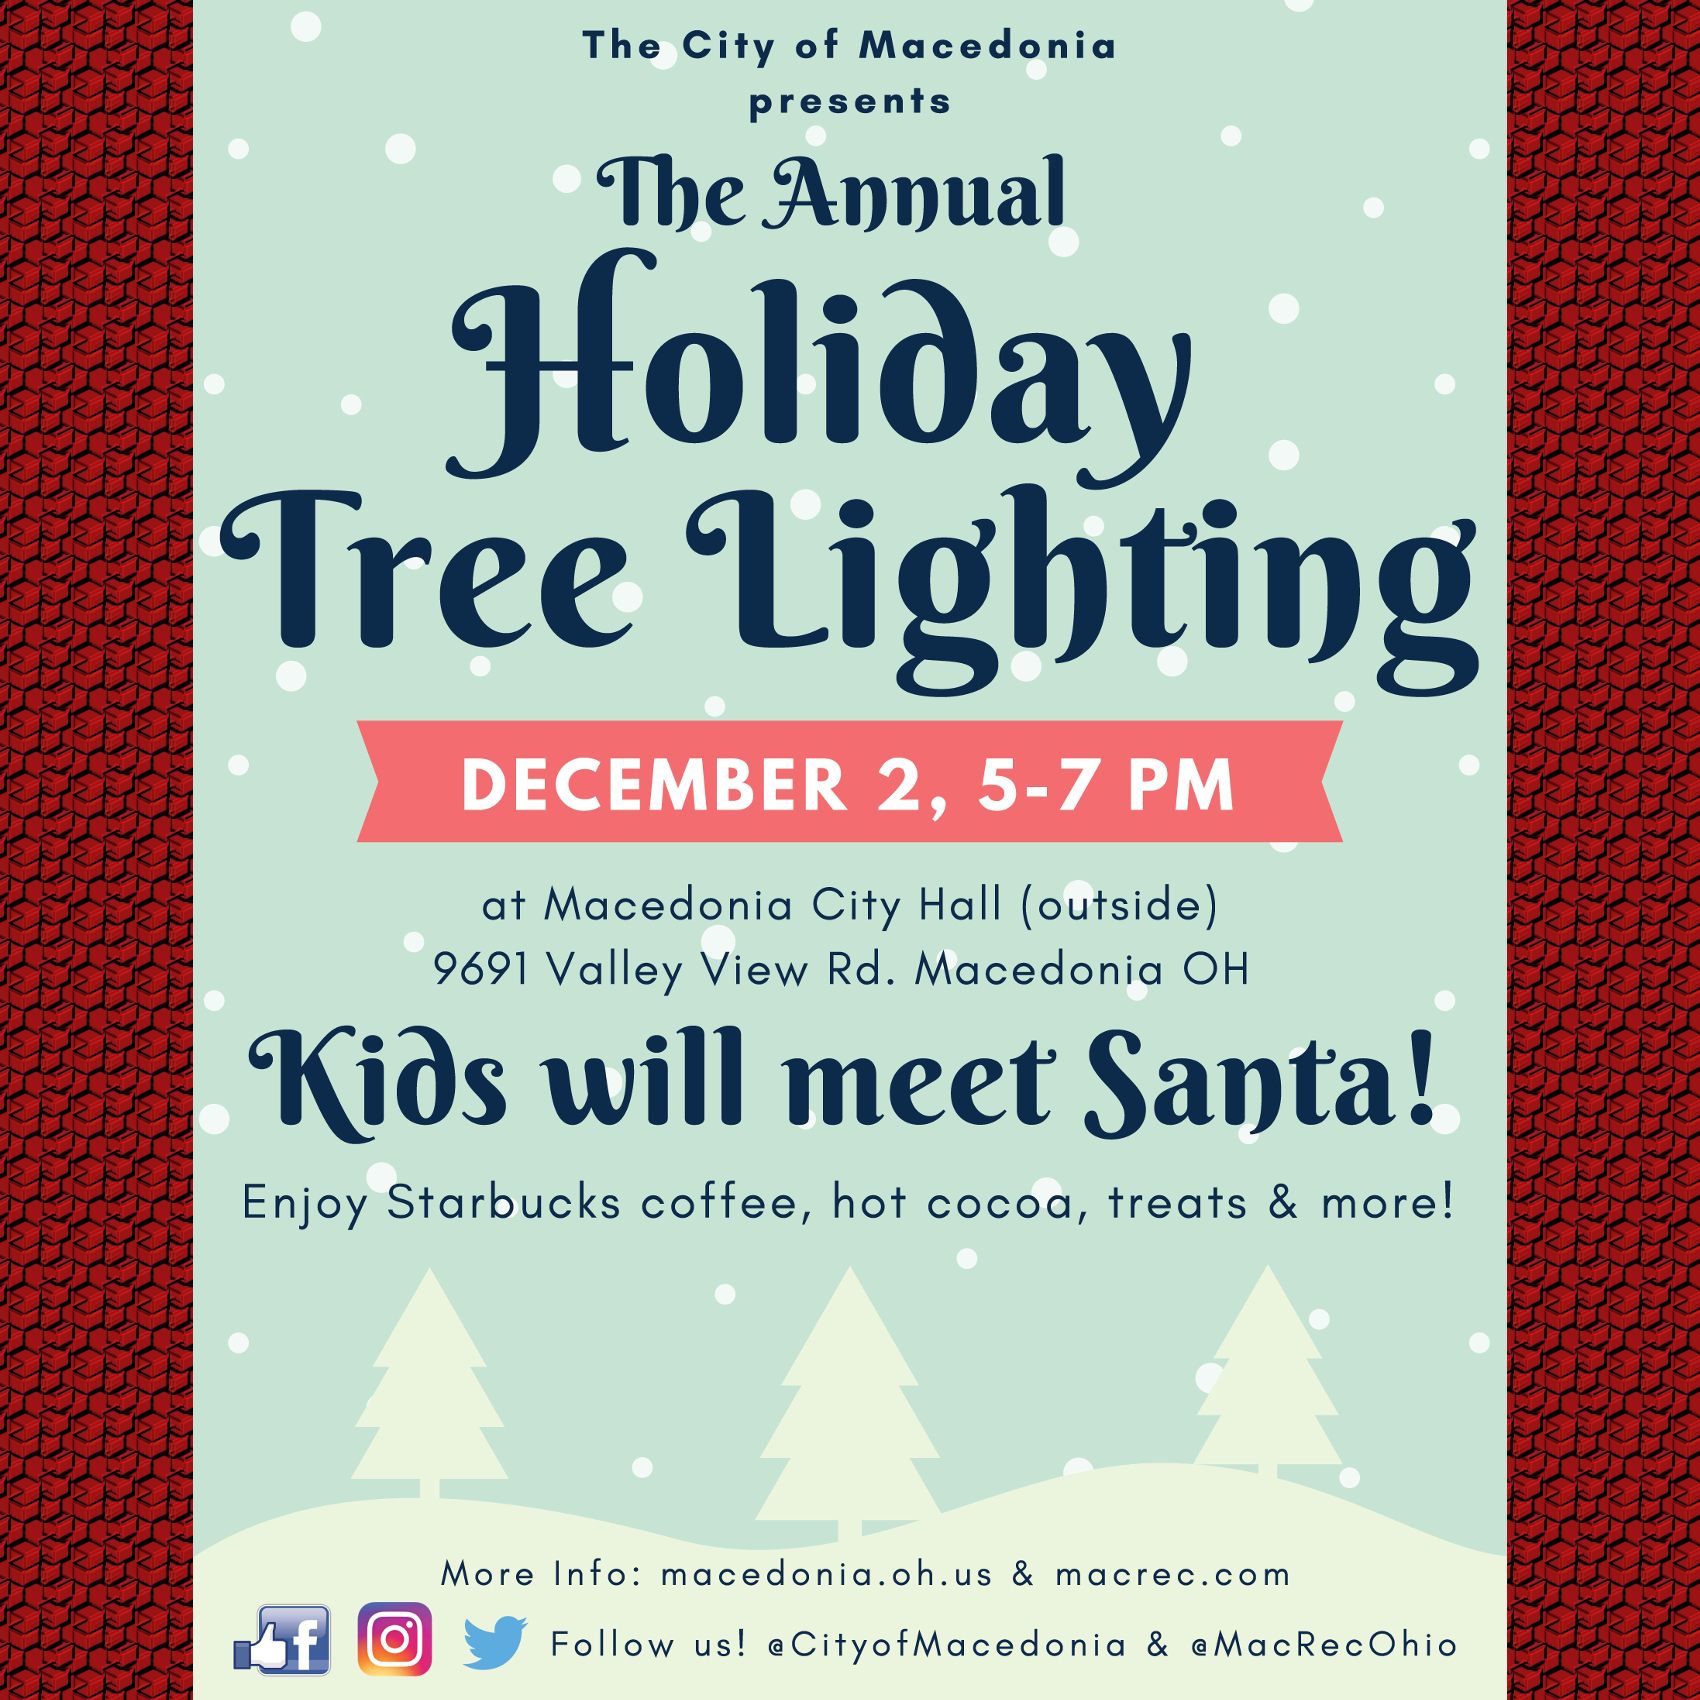 2018 Holiday Tree Lighting (002)sq